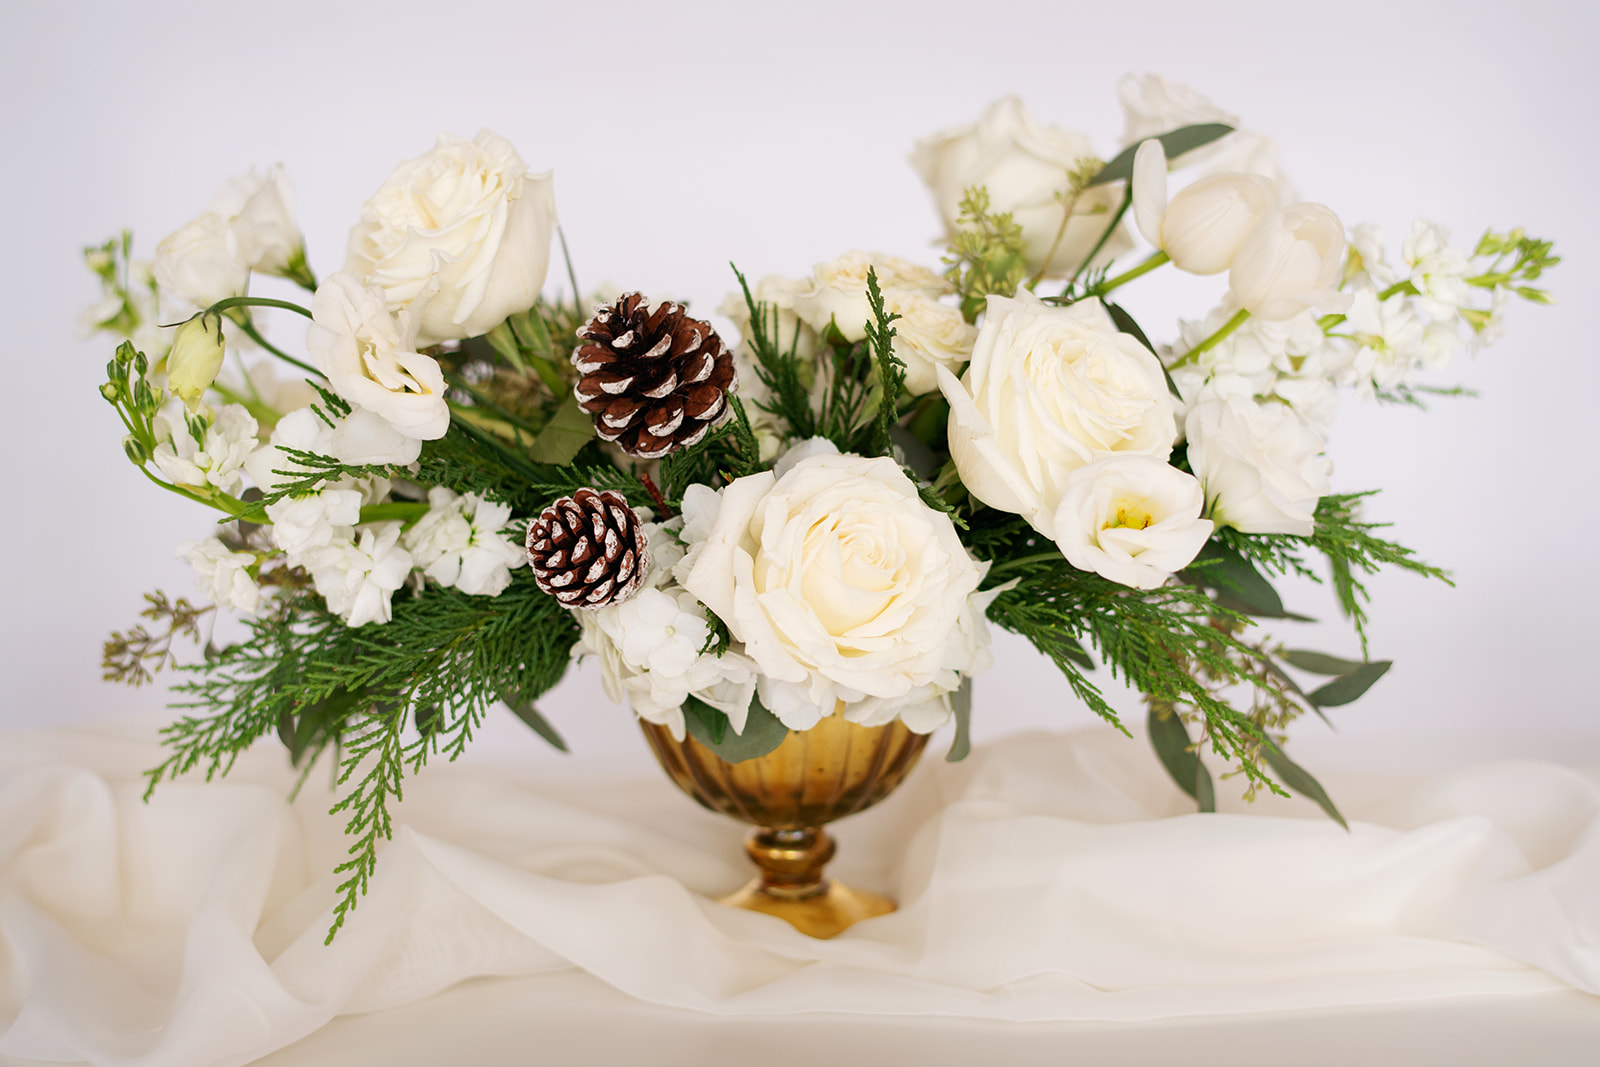 Rustic White Holiday Arrangement